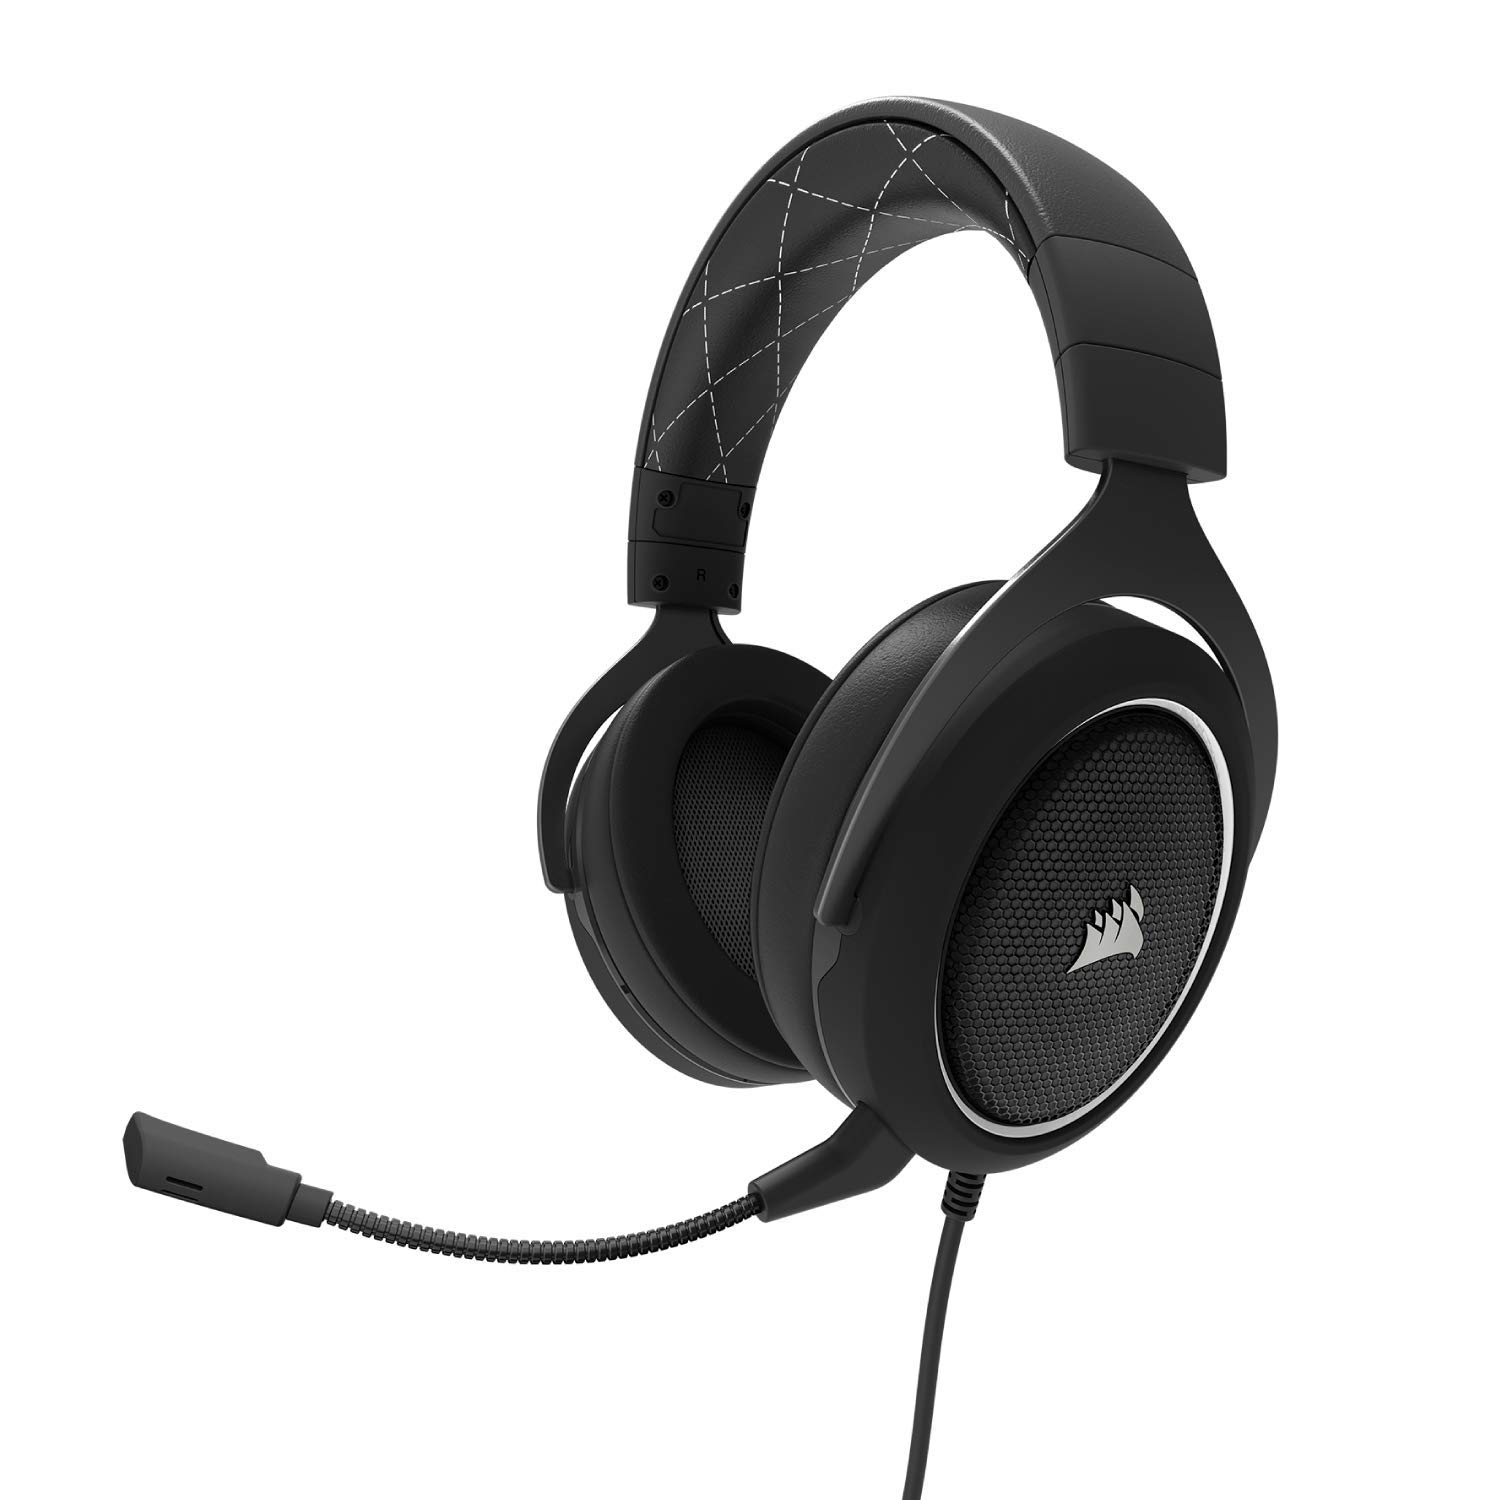 CORSAIR HS60 - 7.1 Virtual Surround Sound PC Gaming Headset w/USB DAC - Discord Certified Headphones - Compatible with Xbox One, PS4, and Nintendo Switch - White